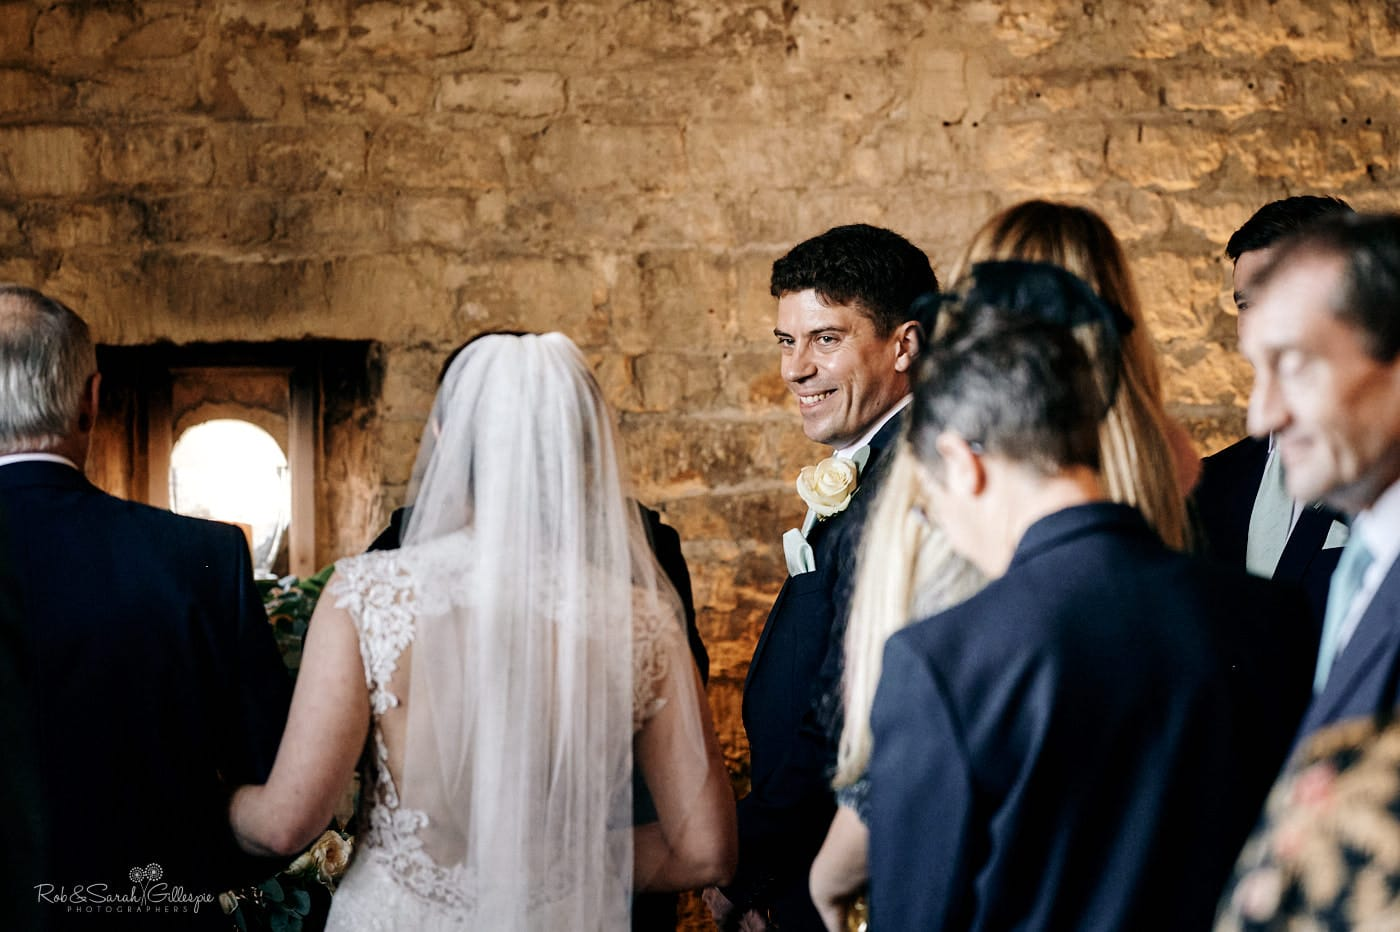 Groom smiling as he sees bride at Lapstone Barn wedding